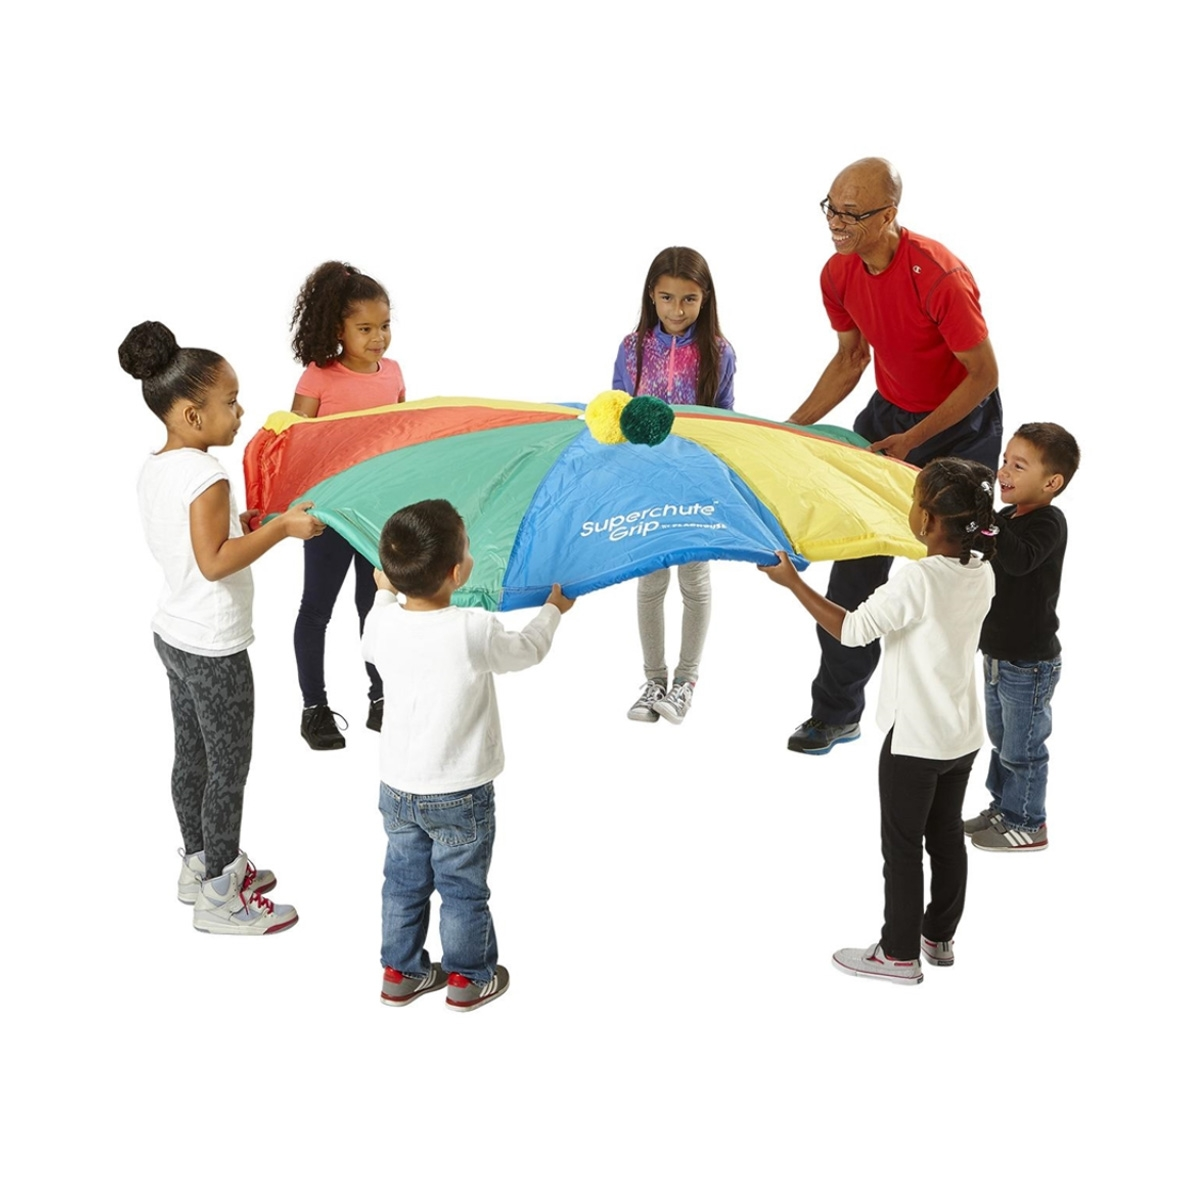 parachute being played with by students and gym teacher